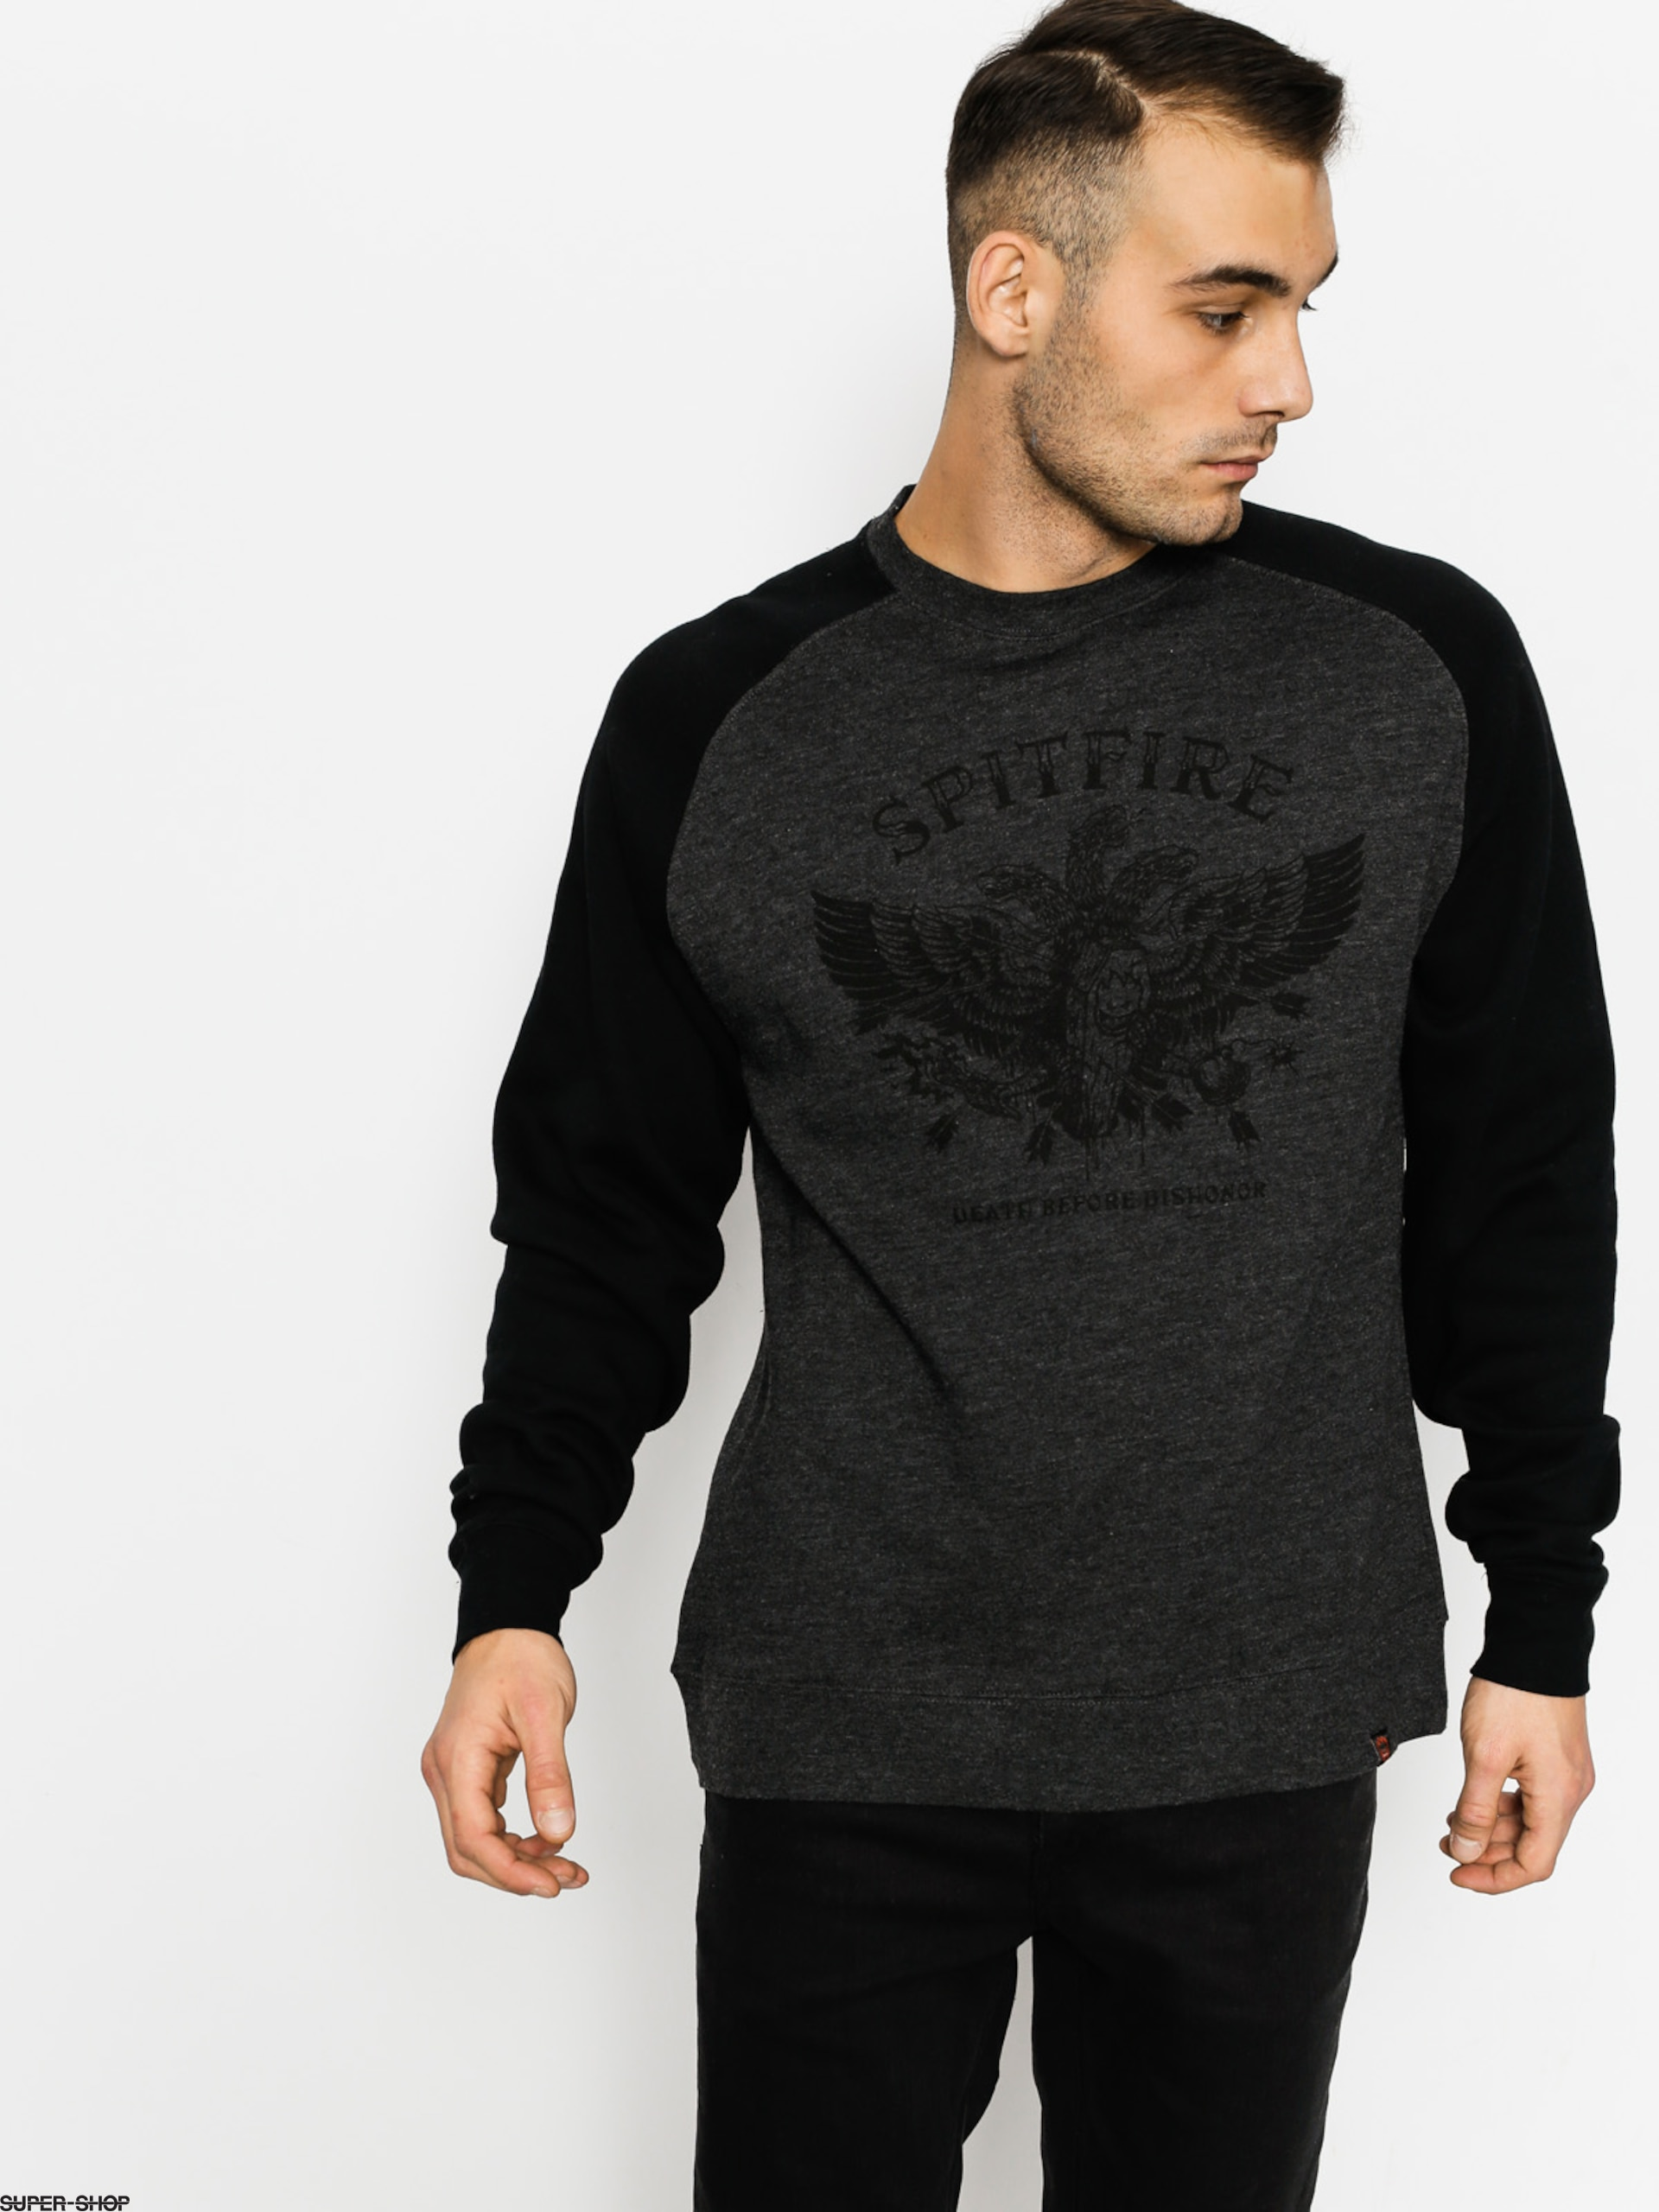 Spitfire Sweatshirt Dishonor (charcoal/black)